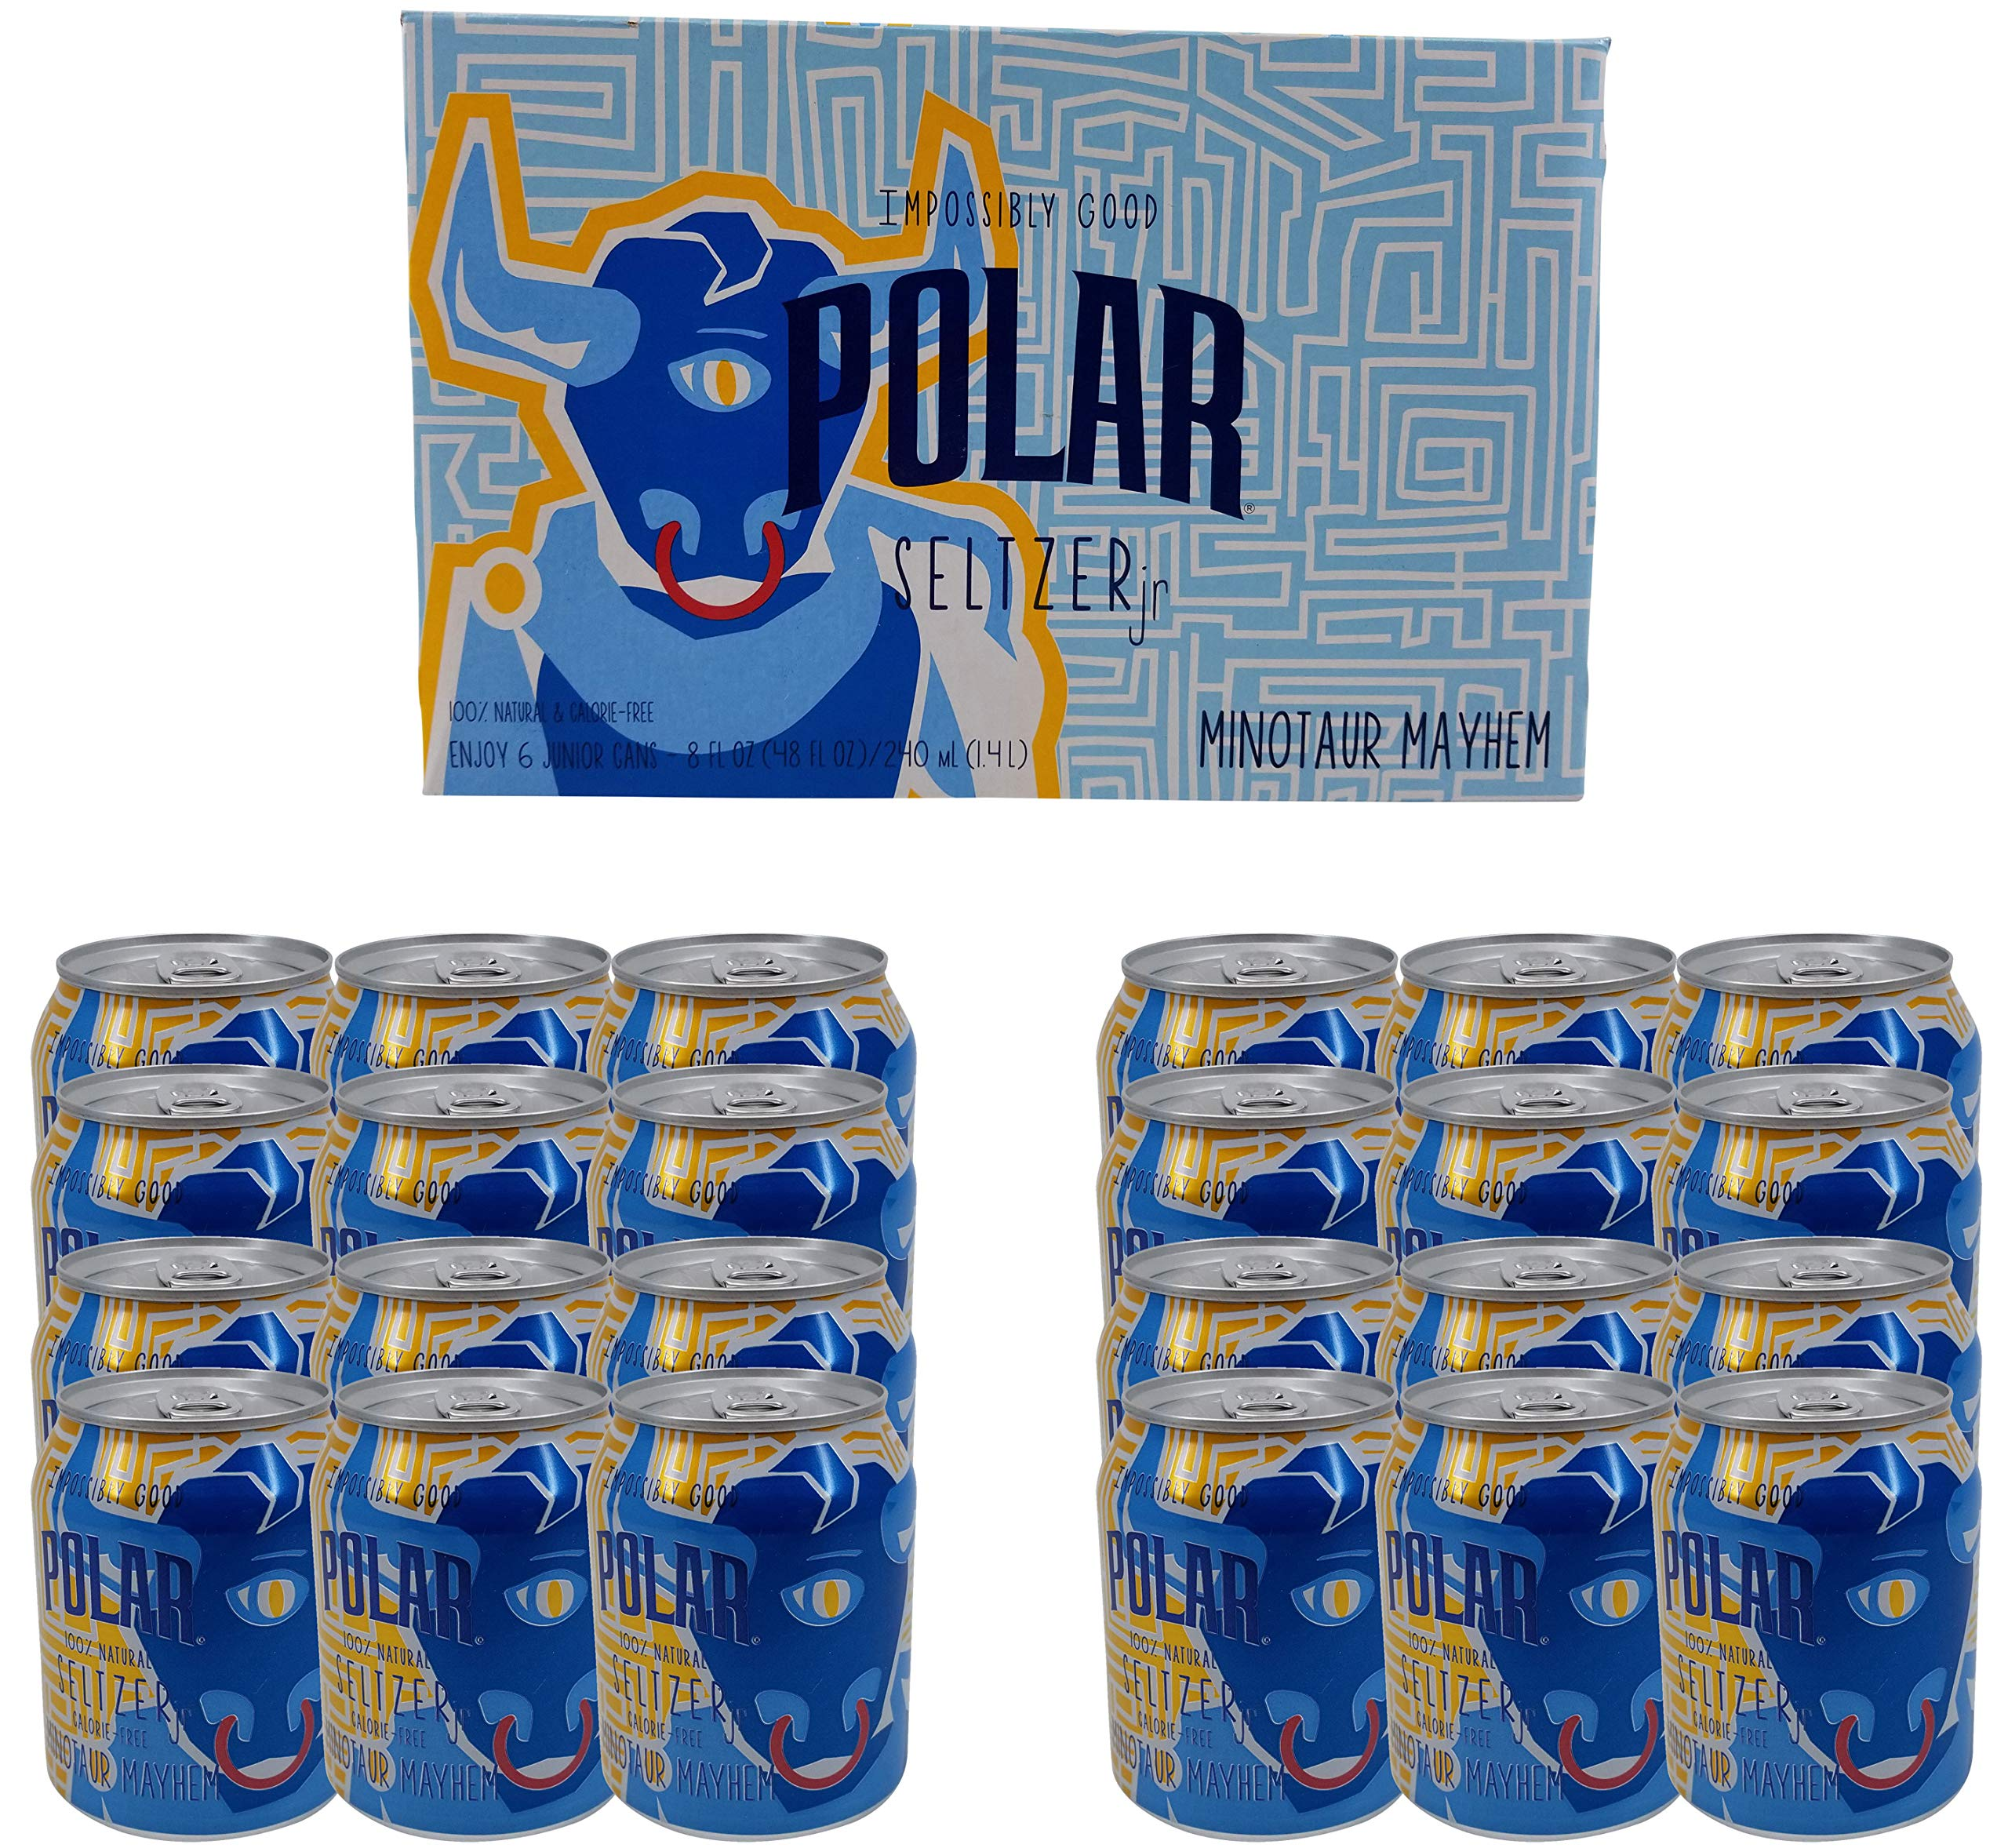 Polar Seltzer Impossibly Good Minotaur Mayhem 24 pk 8 oz. Cans by Generic